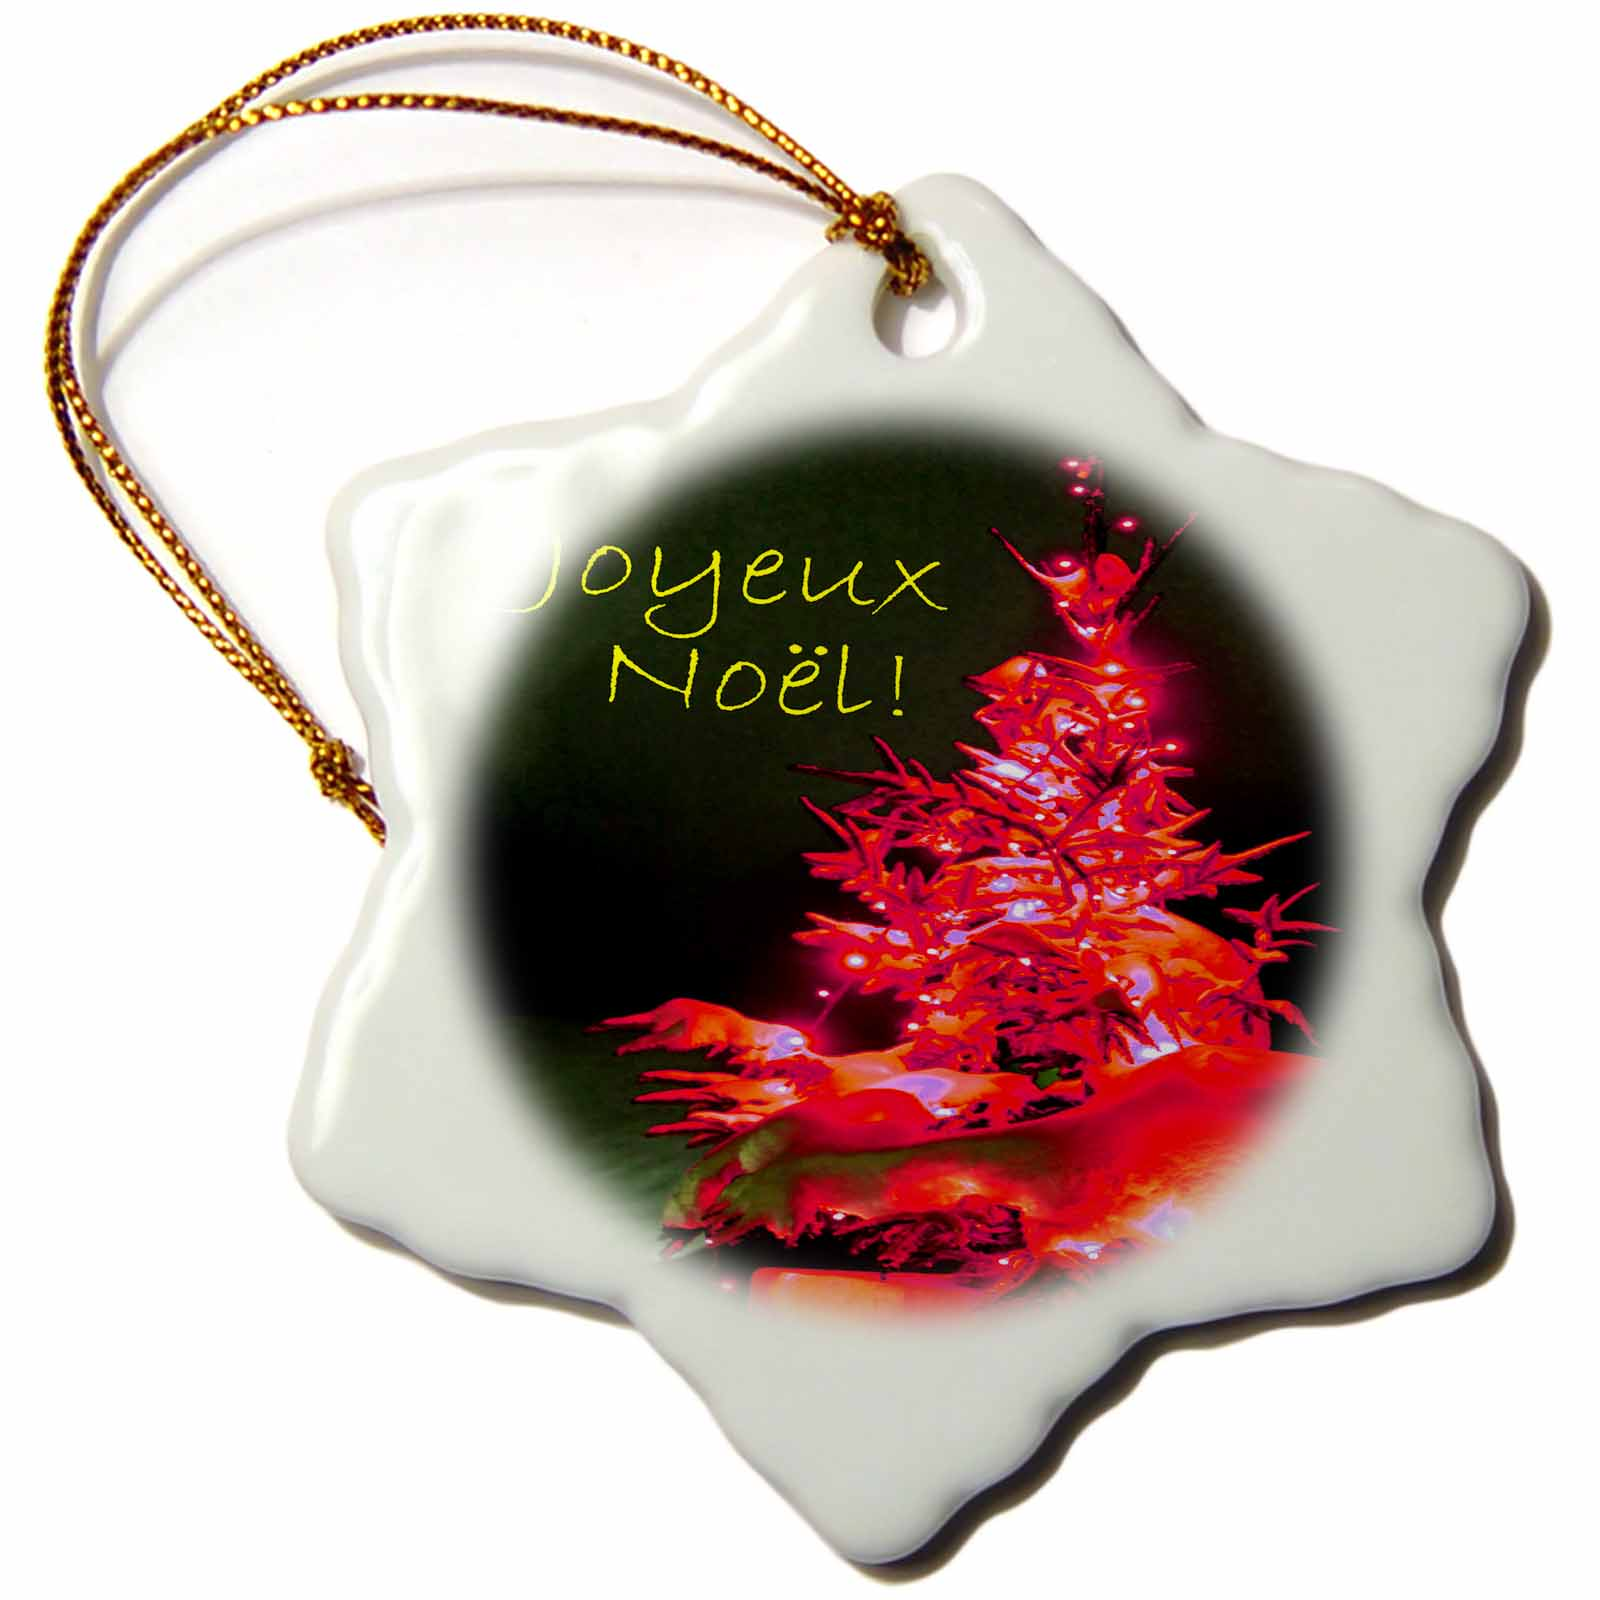 3dRose Pretty Christmas Tree Joyeux Noel in Red with Gold Text, Snowflake Ornament, Porcelain, 3 - inch